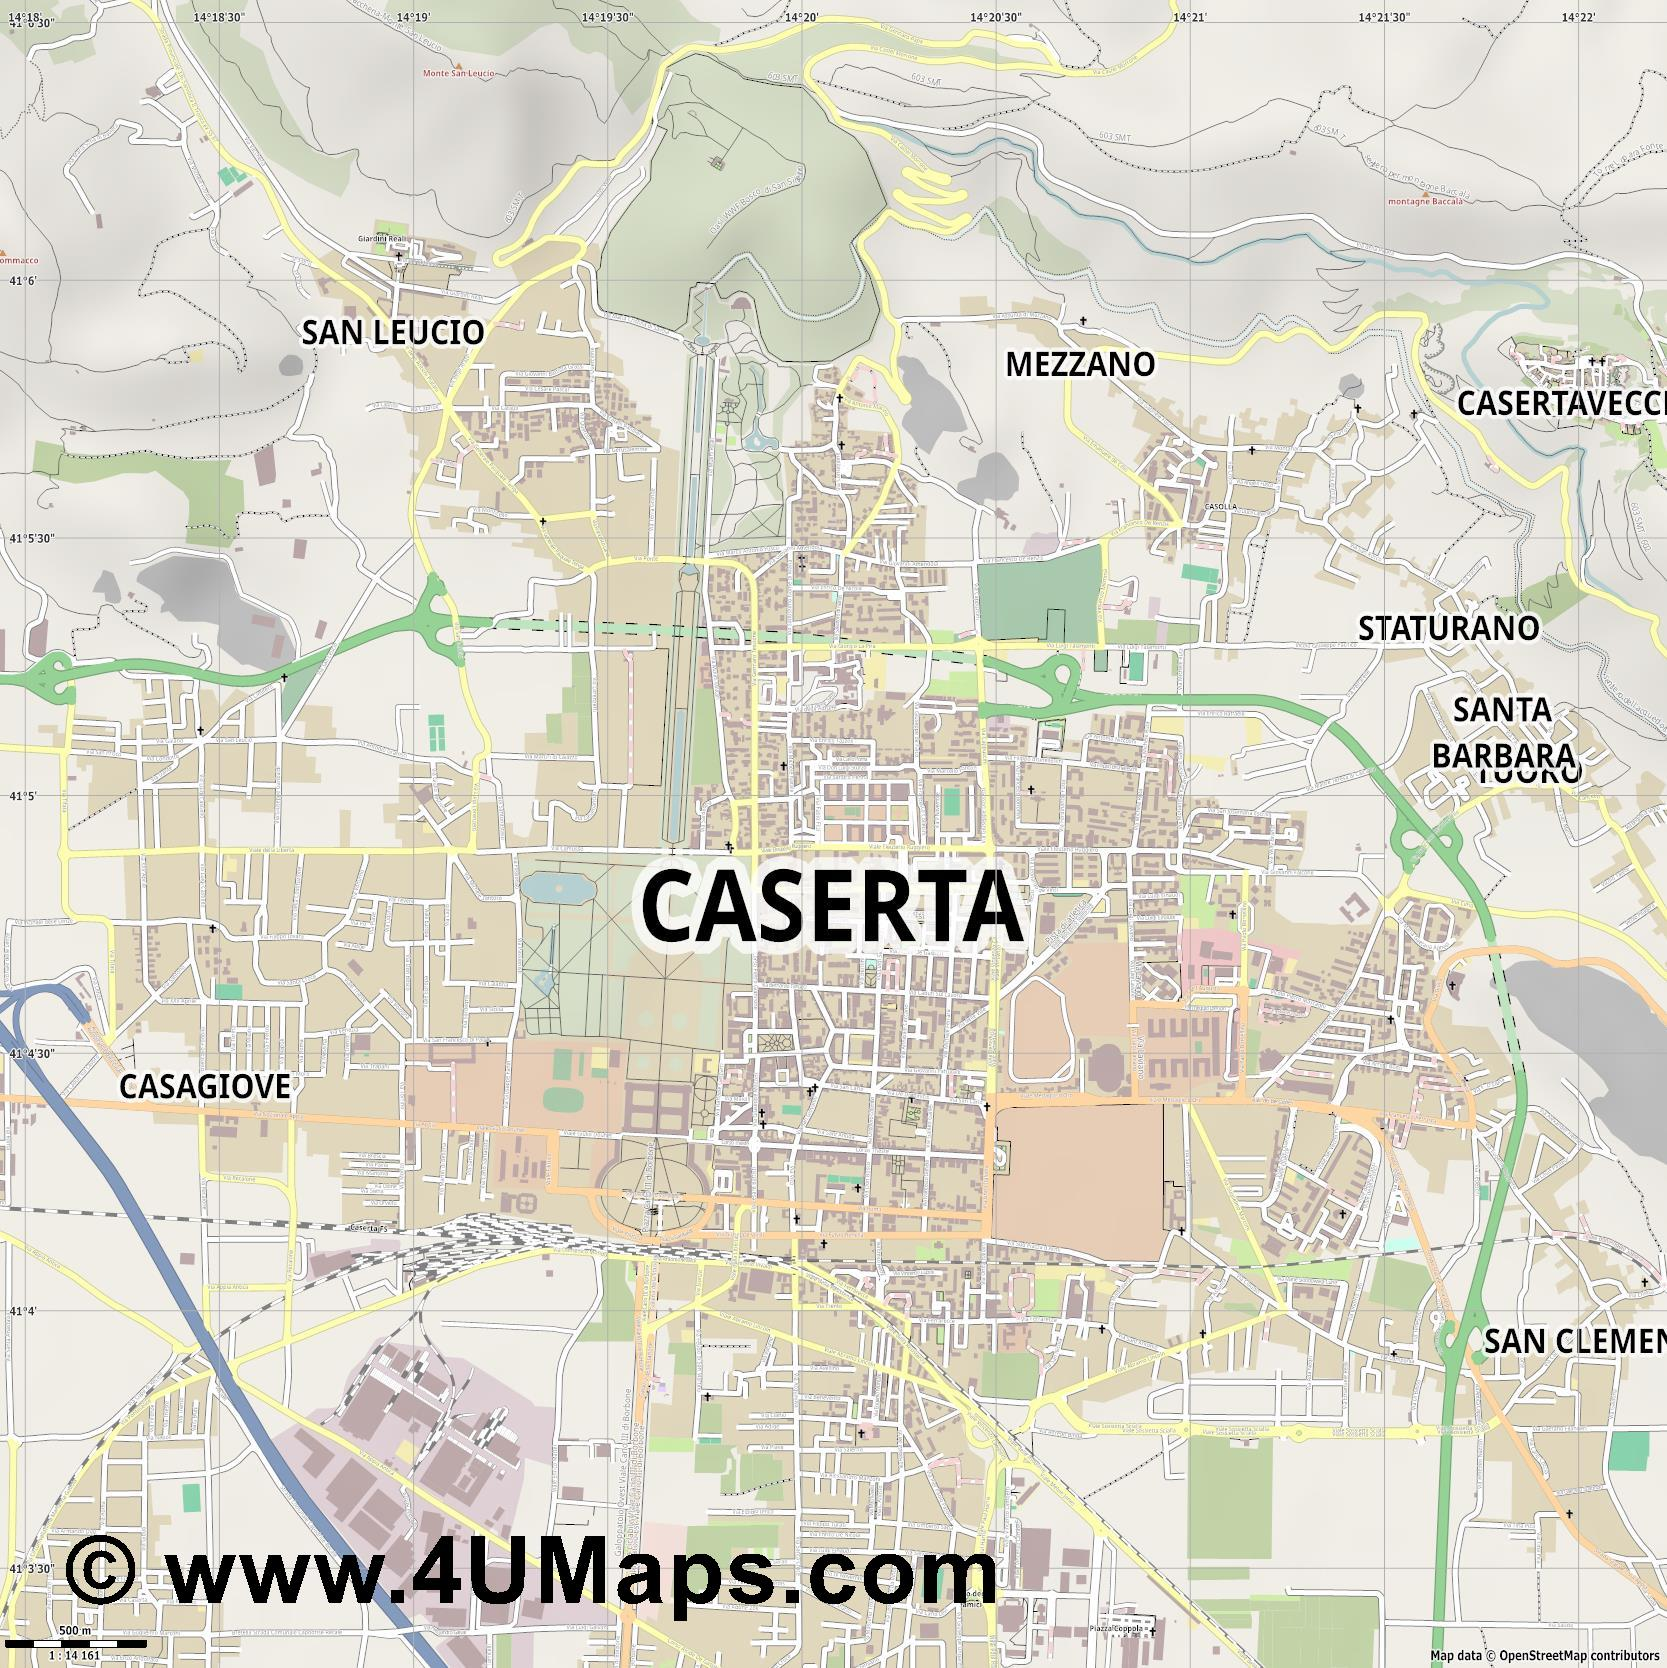 Caserta Caserte  jpg ultra high detail preview vector city map